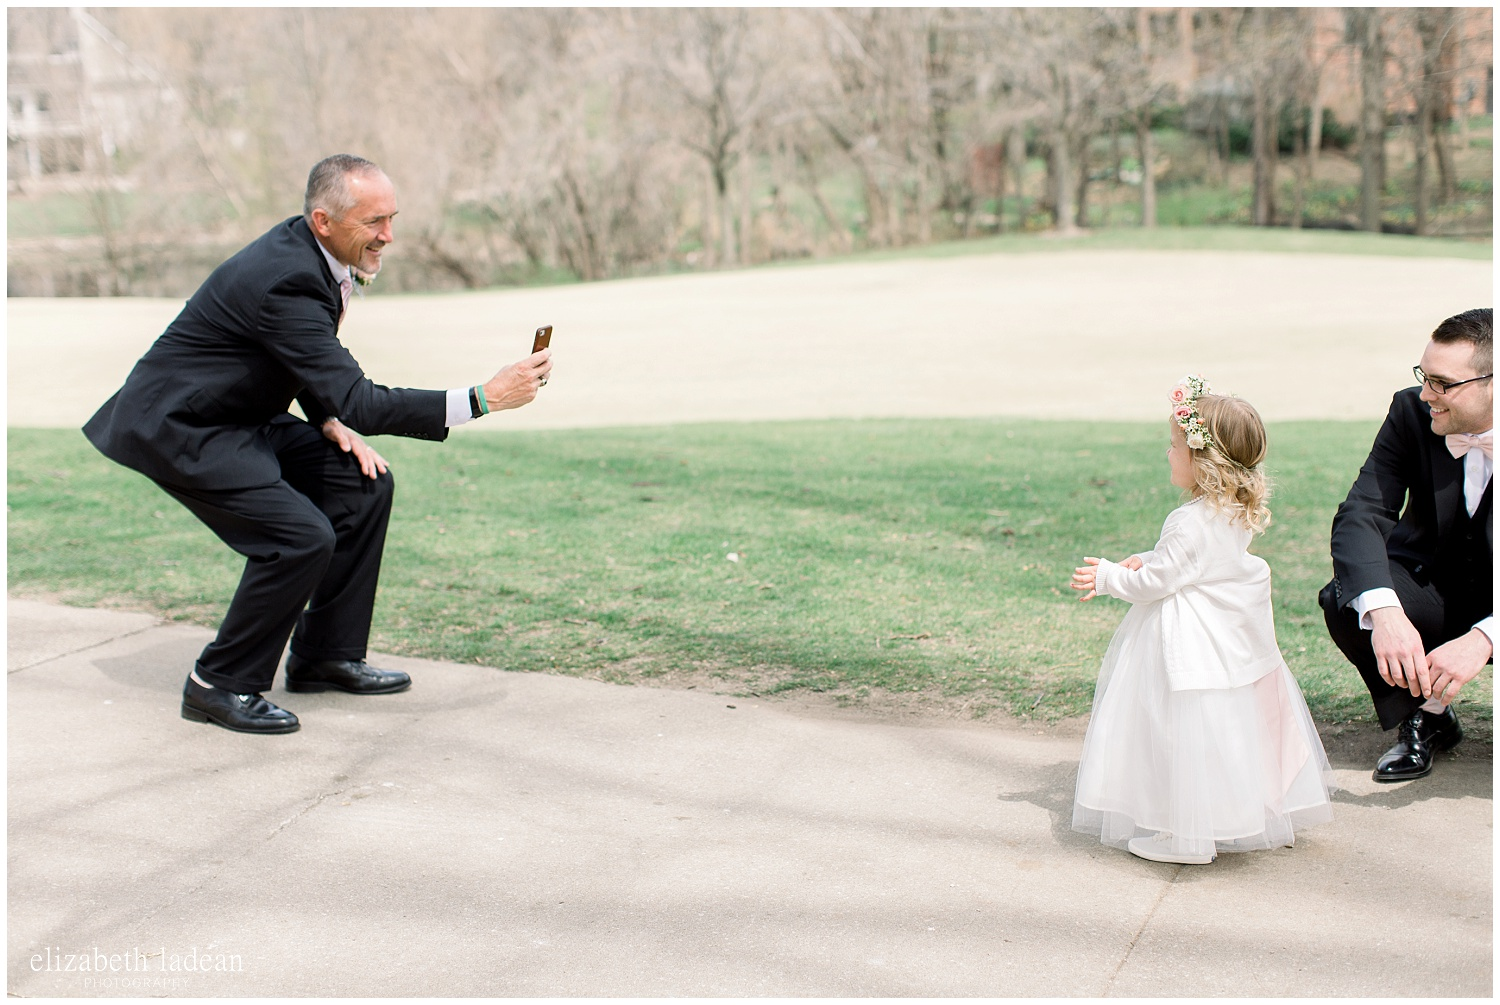 -behind-the-scenes-of-a-wedding-photographer-2018-elizabeth-ladean-photography-photo_3419.jpg